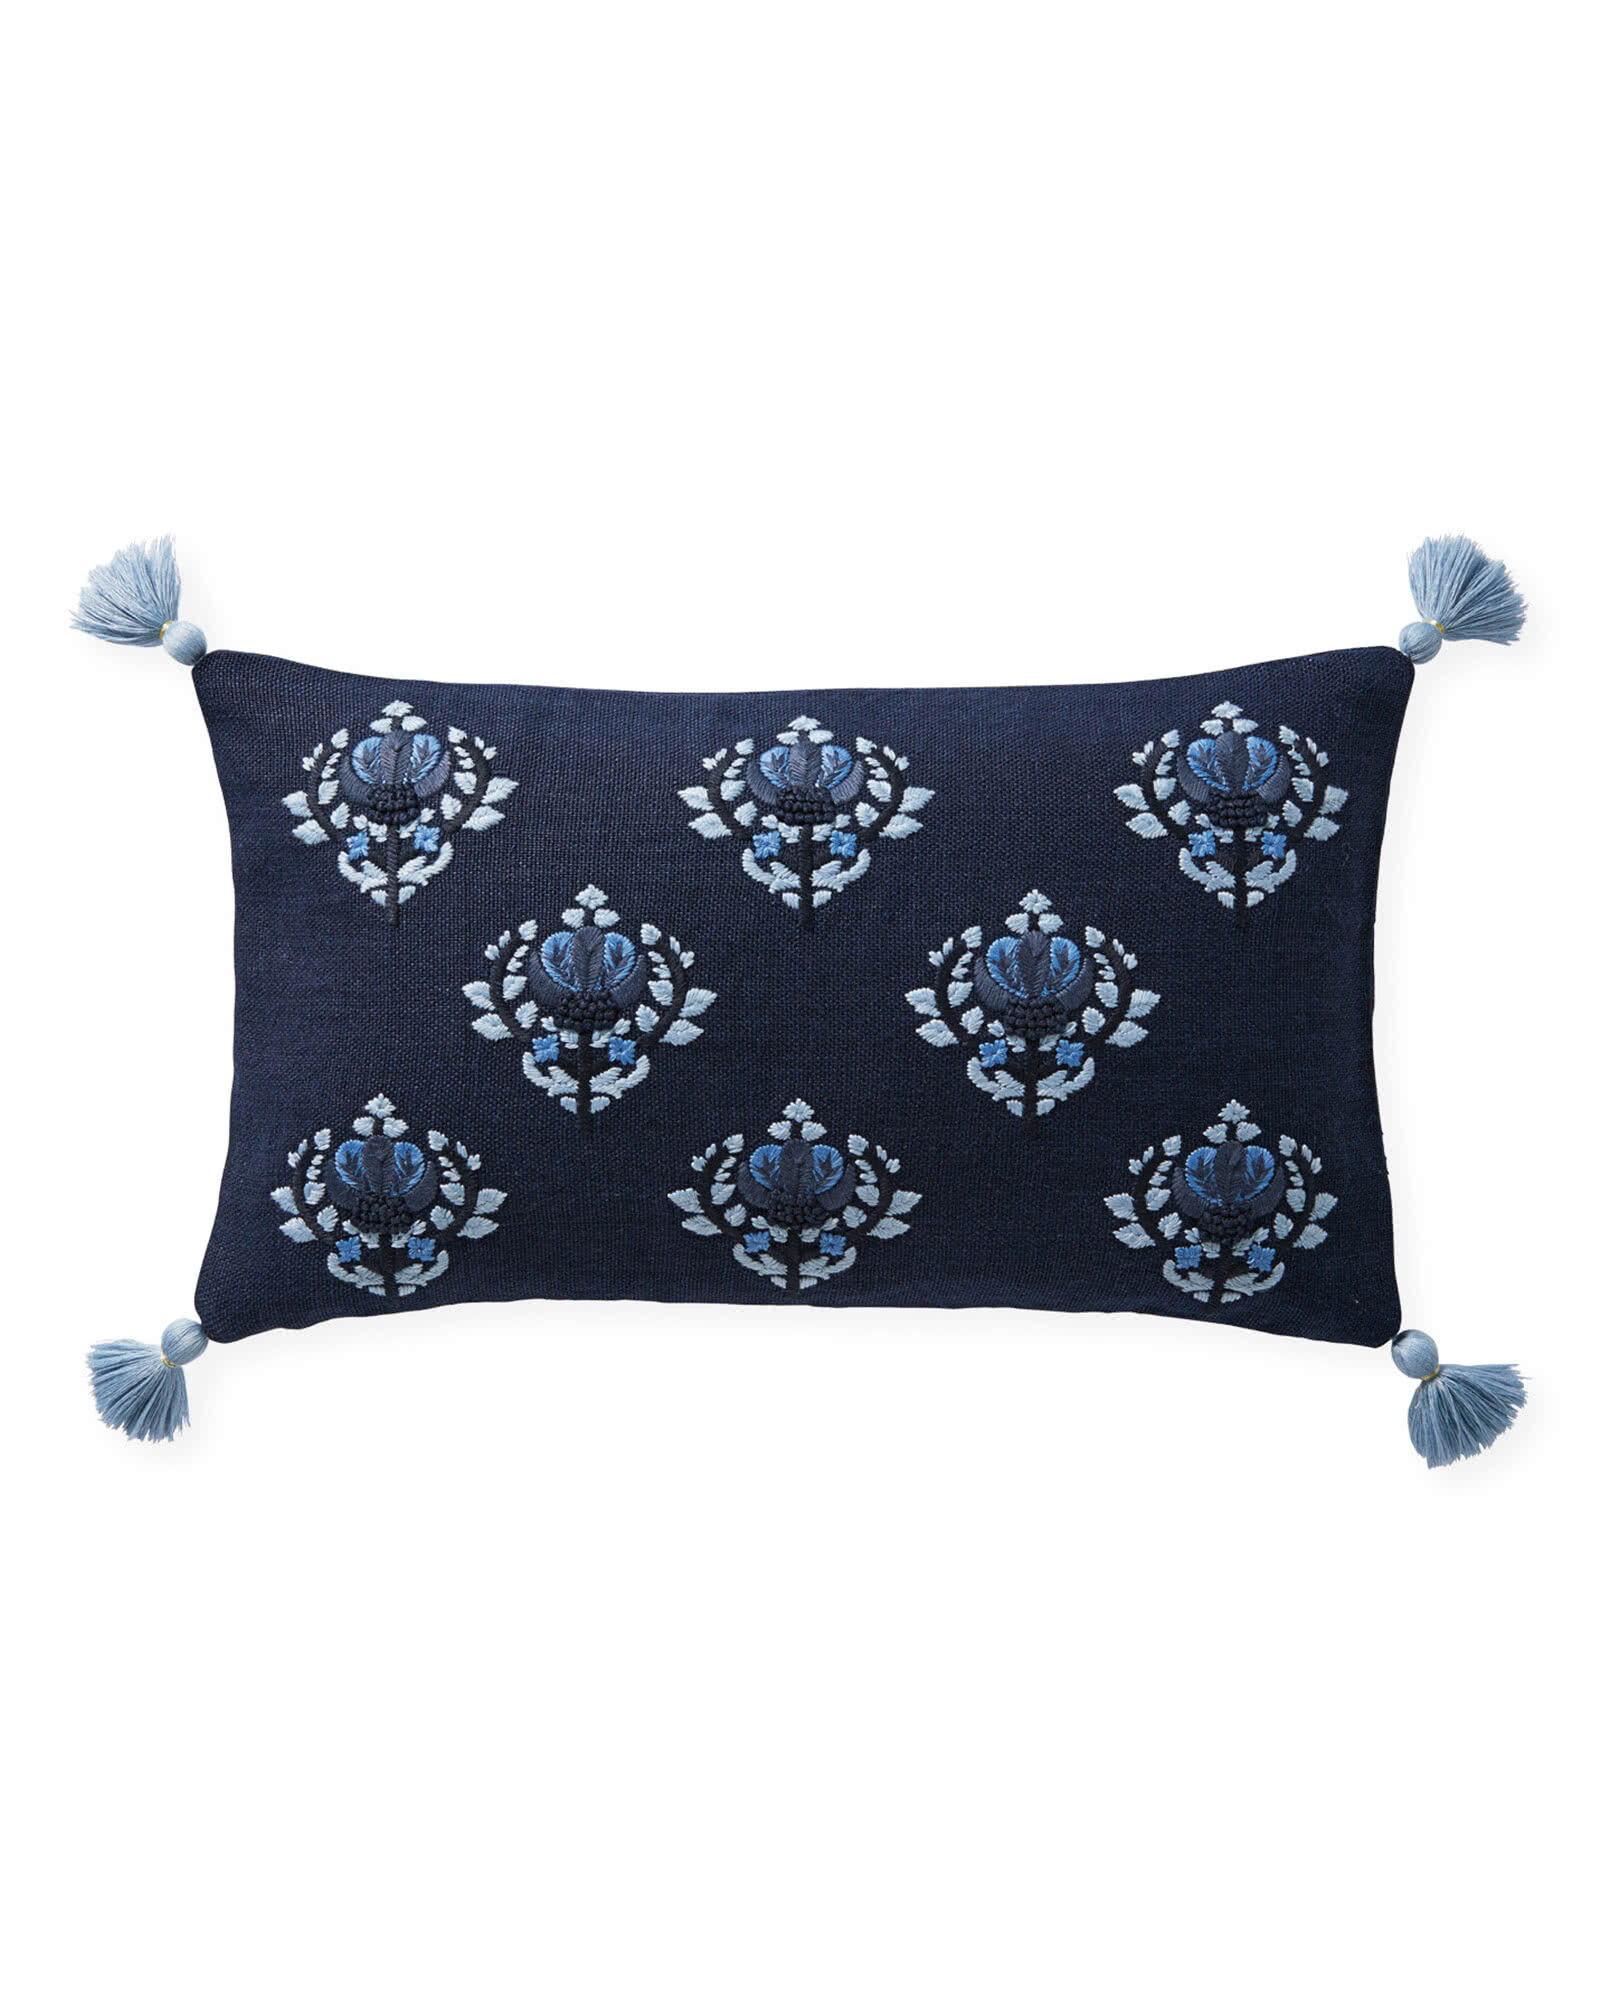 Sofa Pillows Covers   Living Room Pillows   Serena   Lily Kemp Pillow Cover  Navy